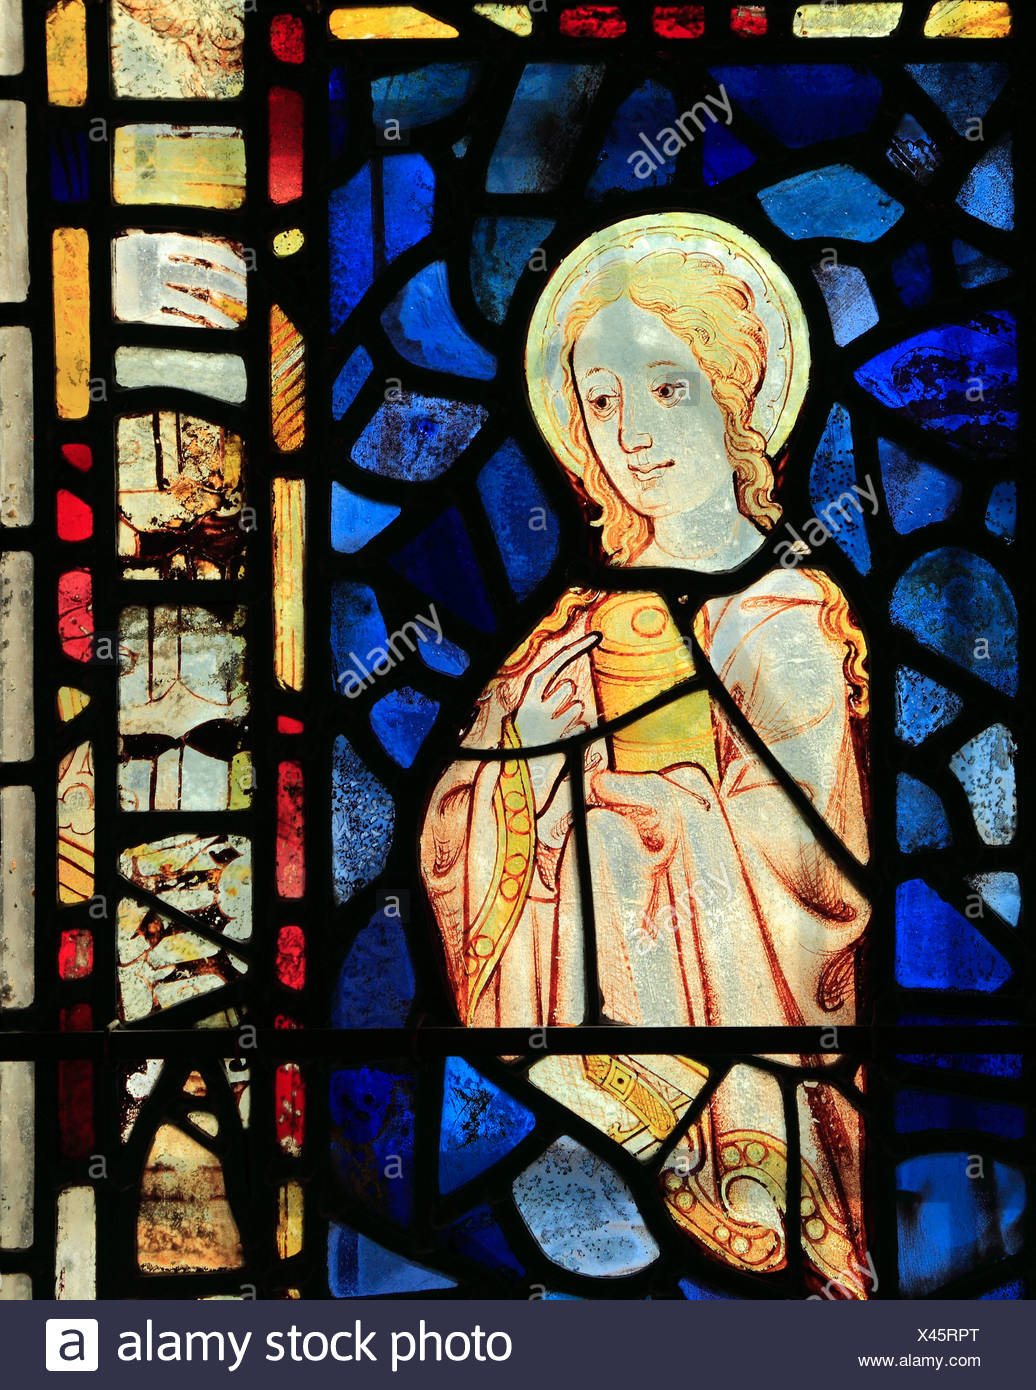 St. Mary Magdalene, holding jar of ointment, medieval stained glass window, Burnham Deeepdale, Norfolk England UK saint saints - Stock Image